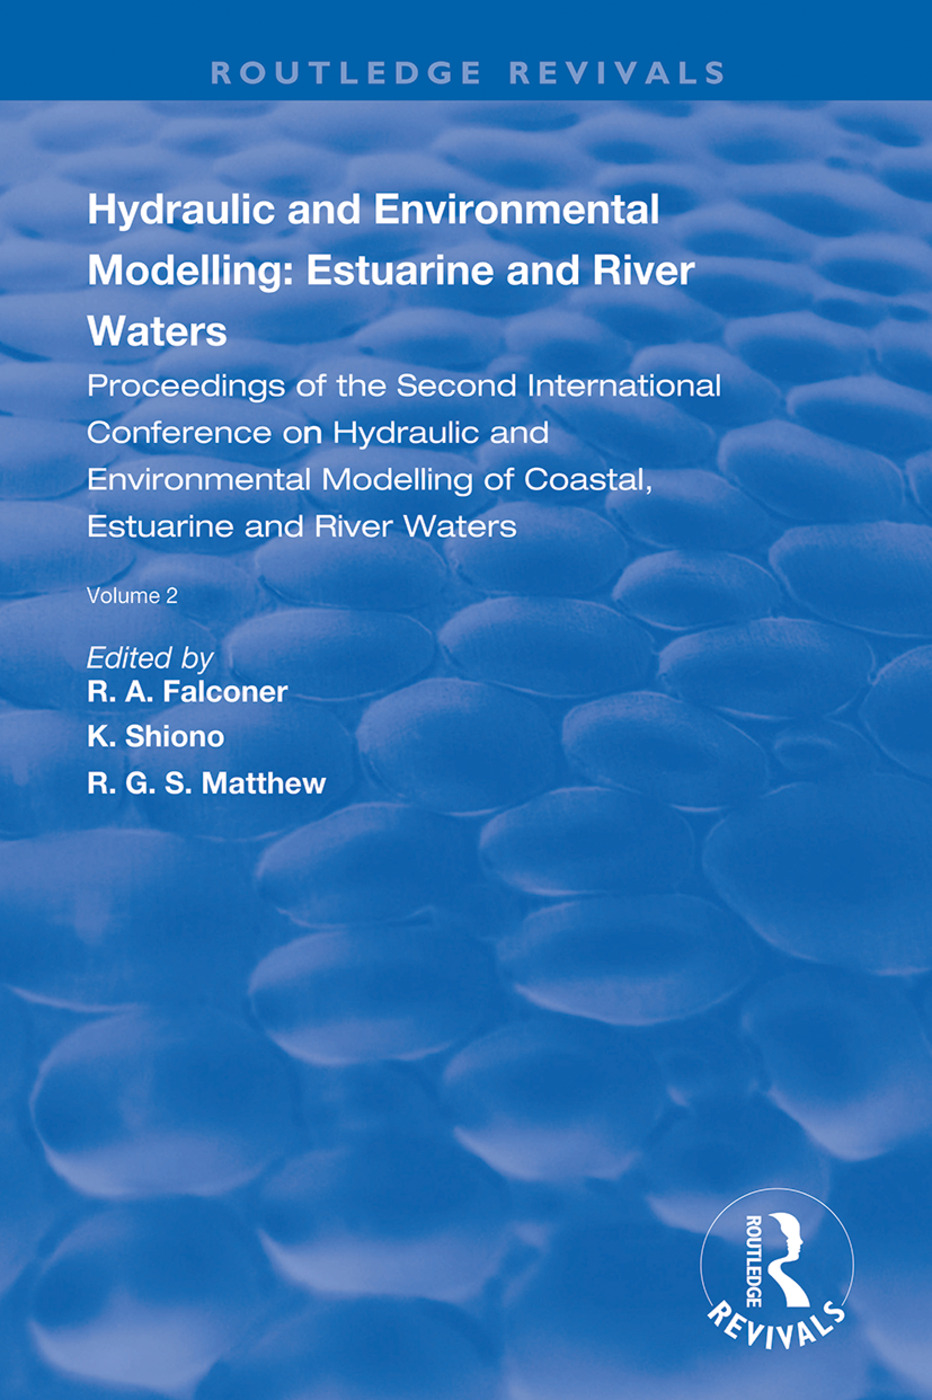 Hydraulic and Environmental Modelling: Estuarine and River Waters: Proceedings of the Second International Conference on Hydraulic and Environmental Modelling of Coastal, Estuarine and River Waters, Vol. 2., 1st Edition (Hardback) book cover